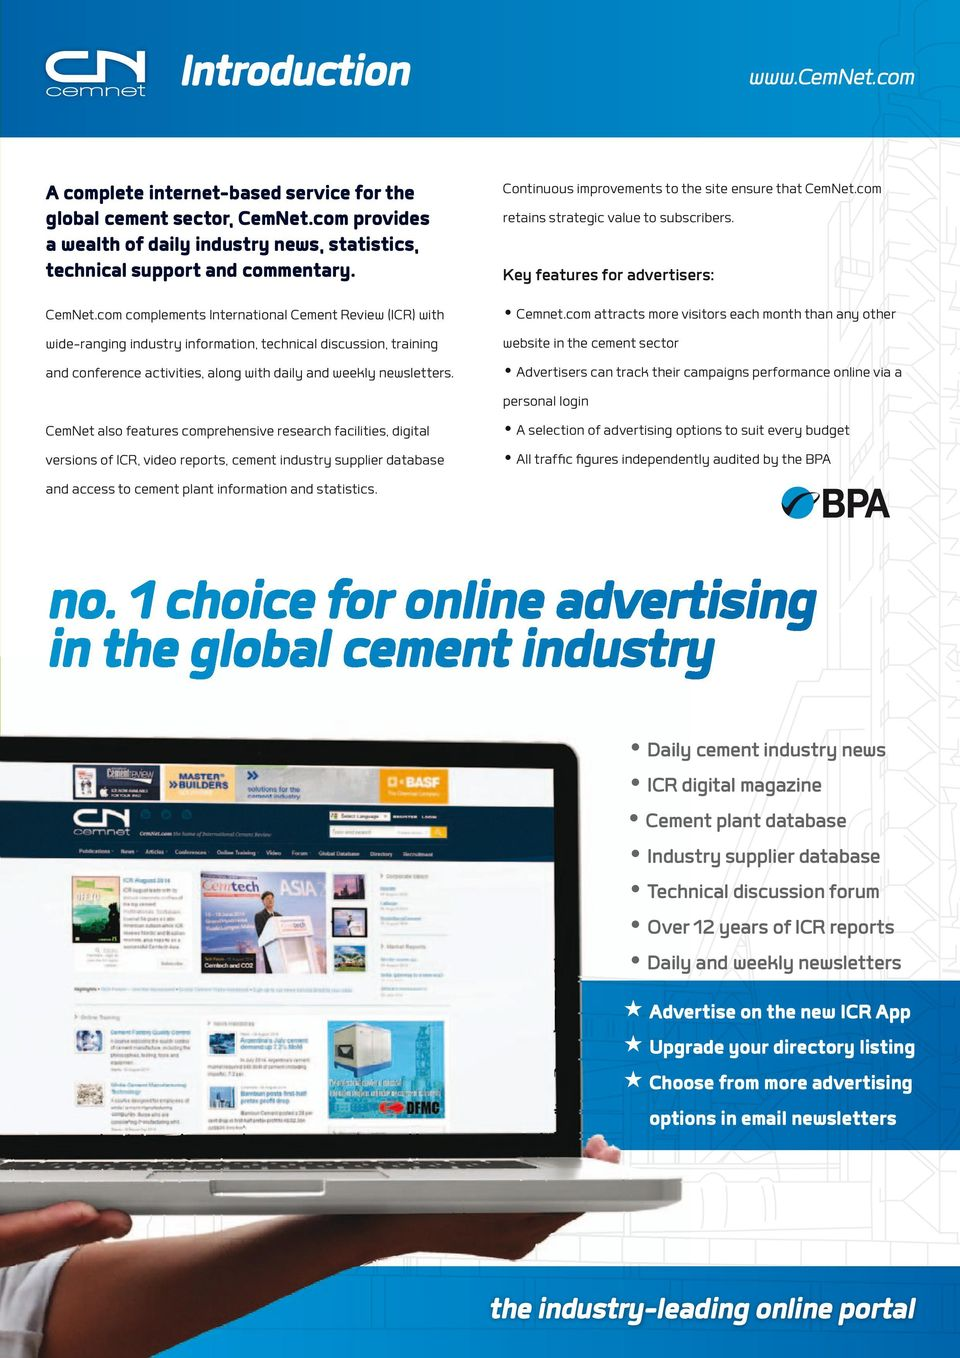 com complements International Cement Review (ICR) with wide-ranging industry information, technical discussion, training and conference activities, along with daily and weekly newsletters.